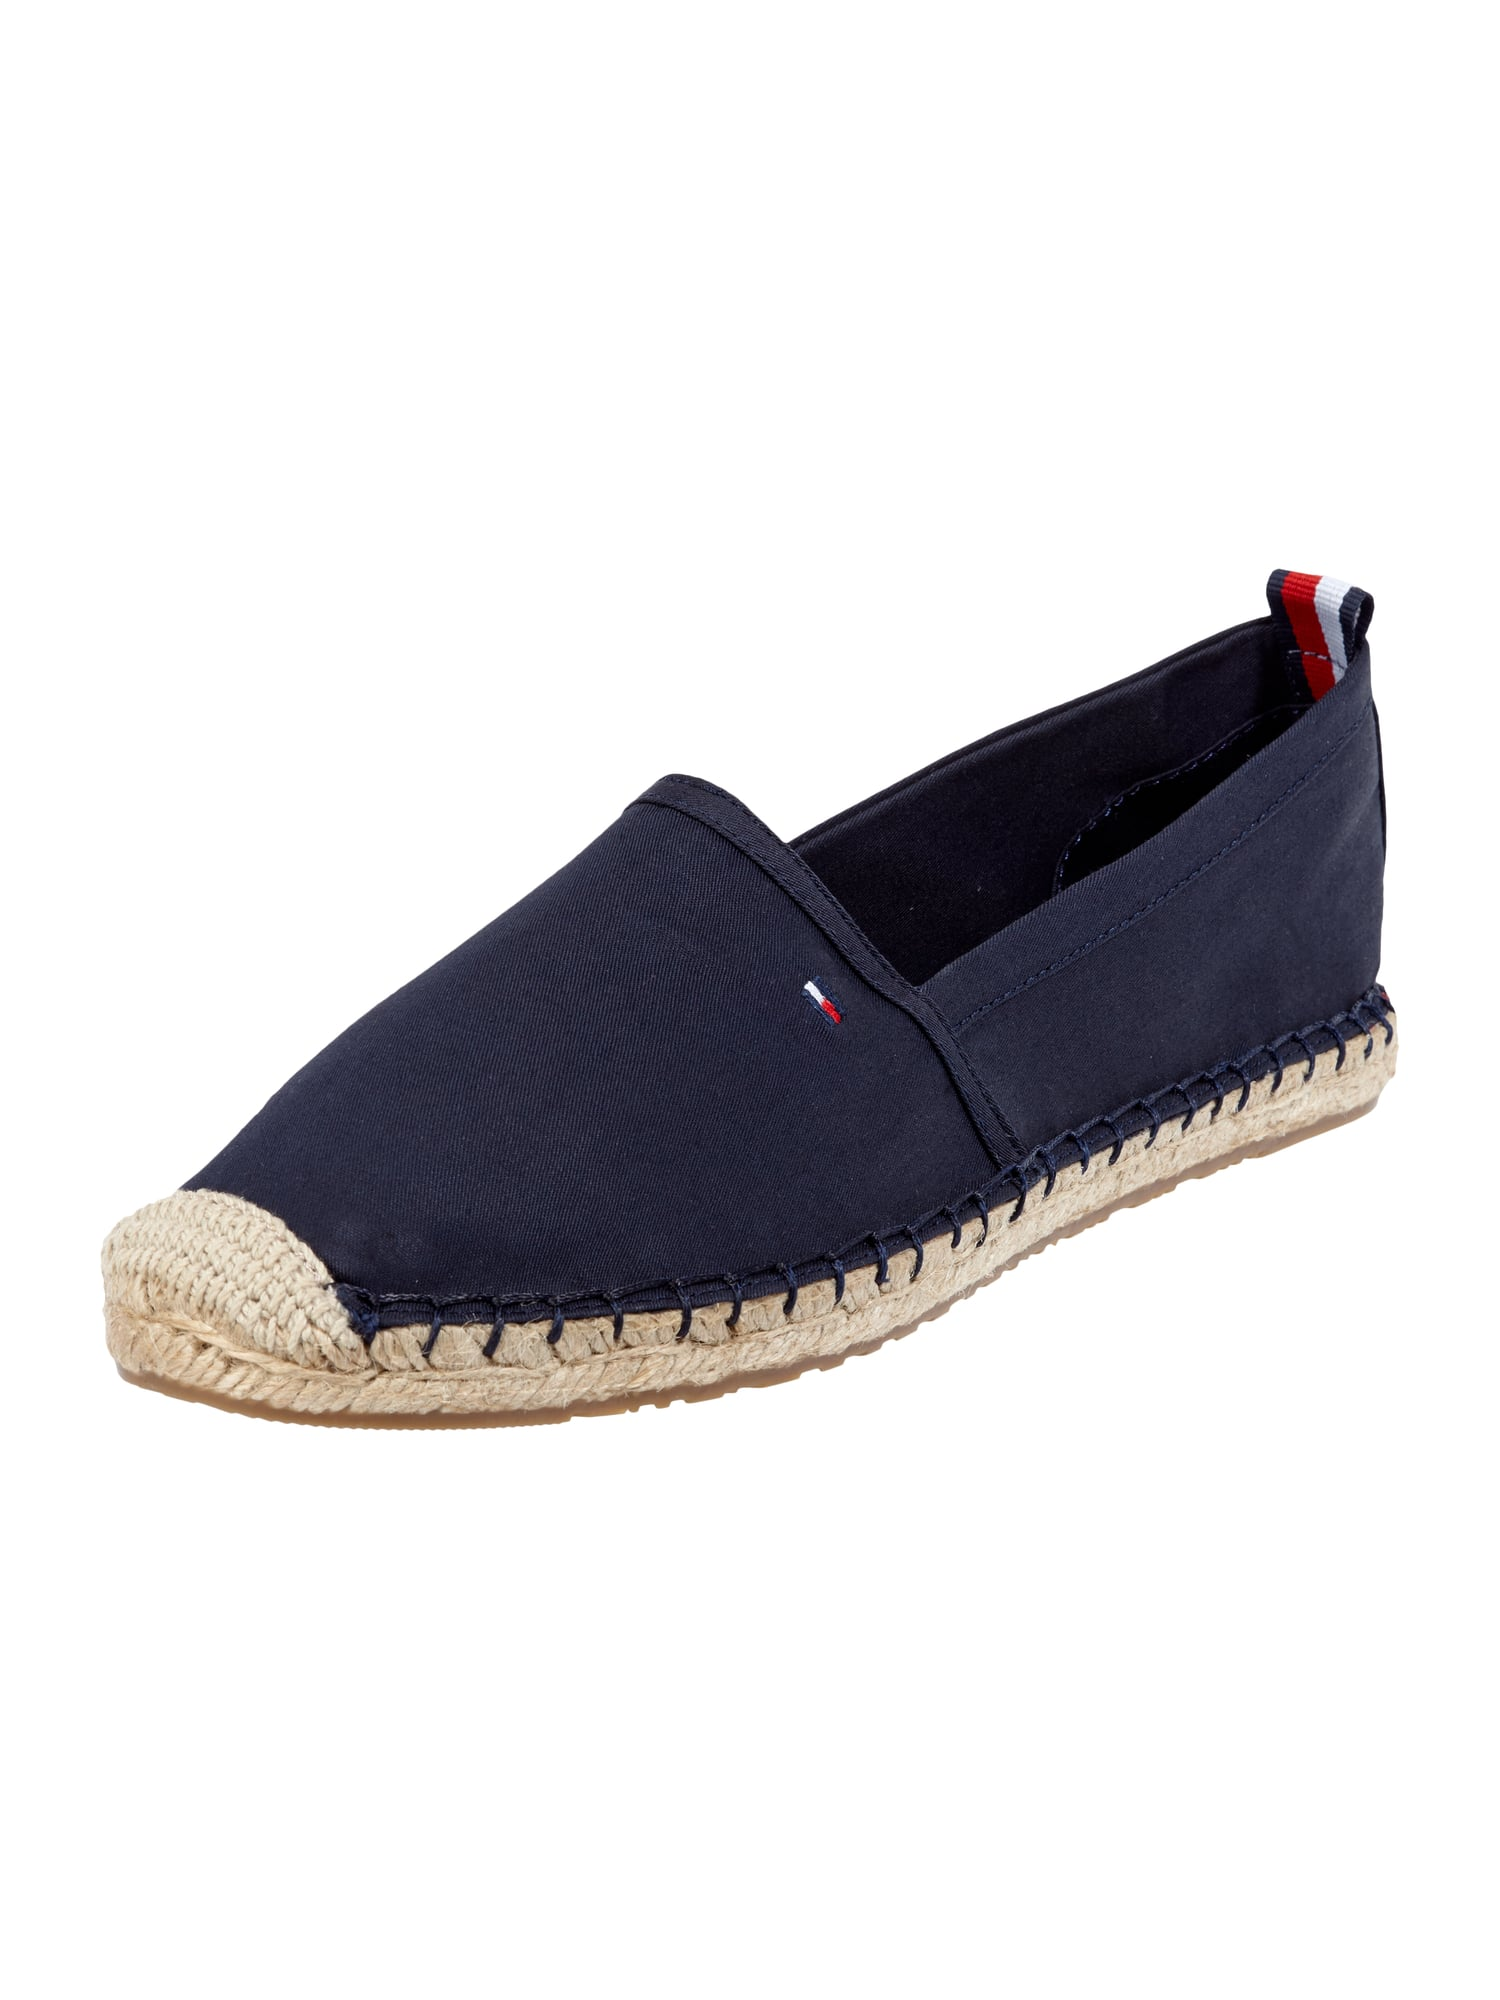 tommy hilfiger espadrilles aus canvas in blau t rkis. Black Bedroom Furniture Sets. Home Design Ideas